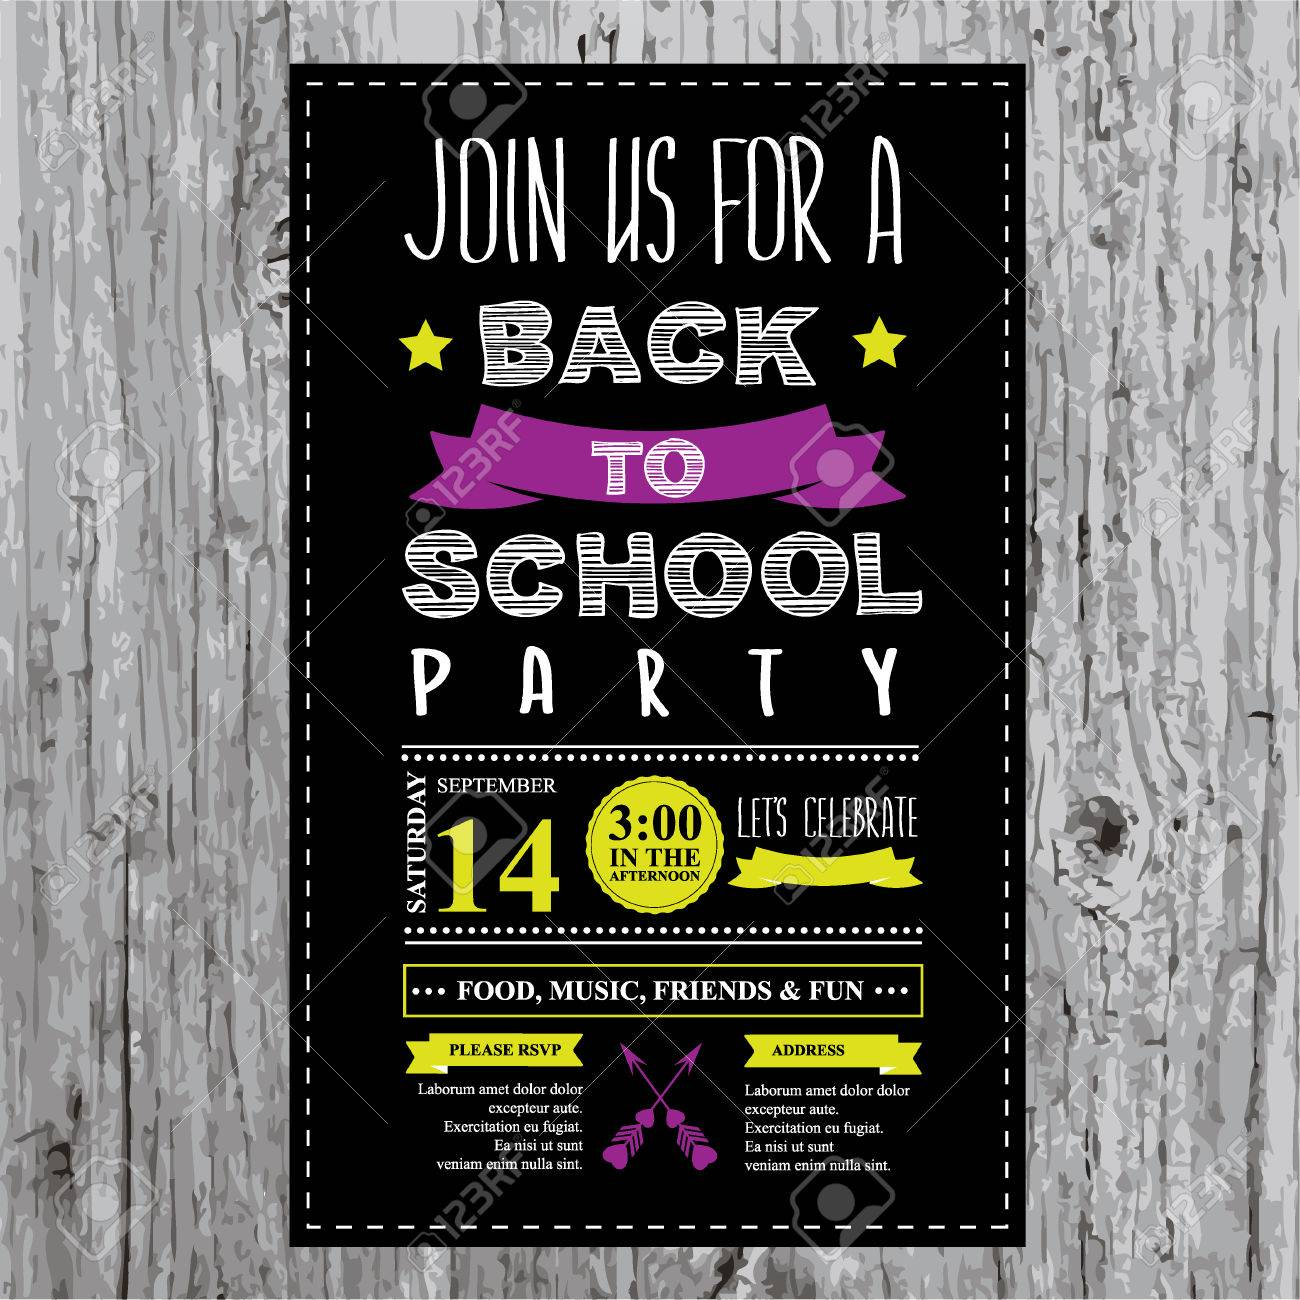 Back to school party invitation design template royalty free.